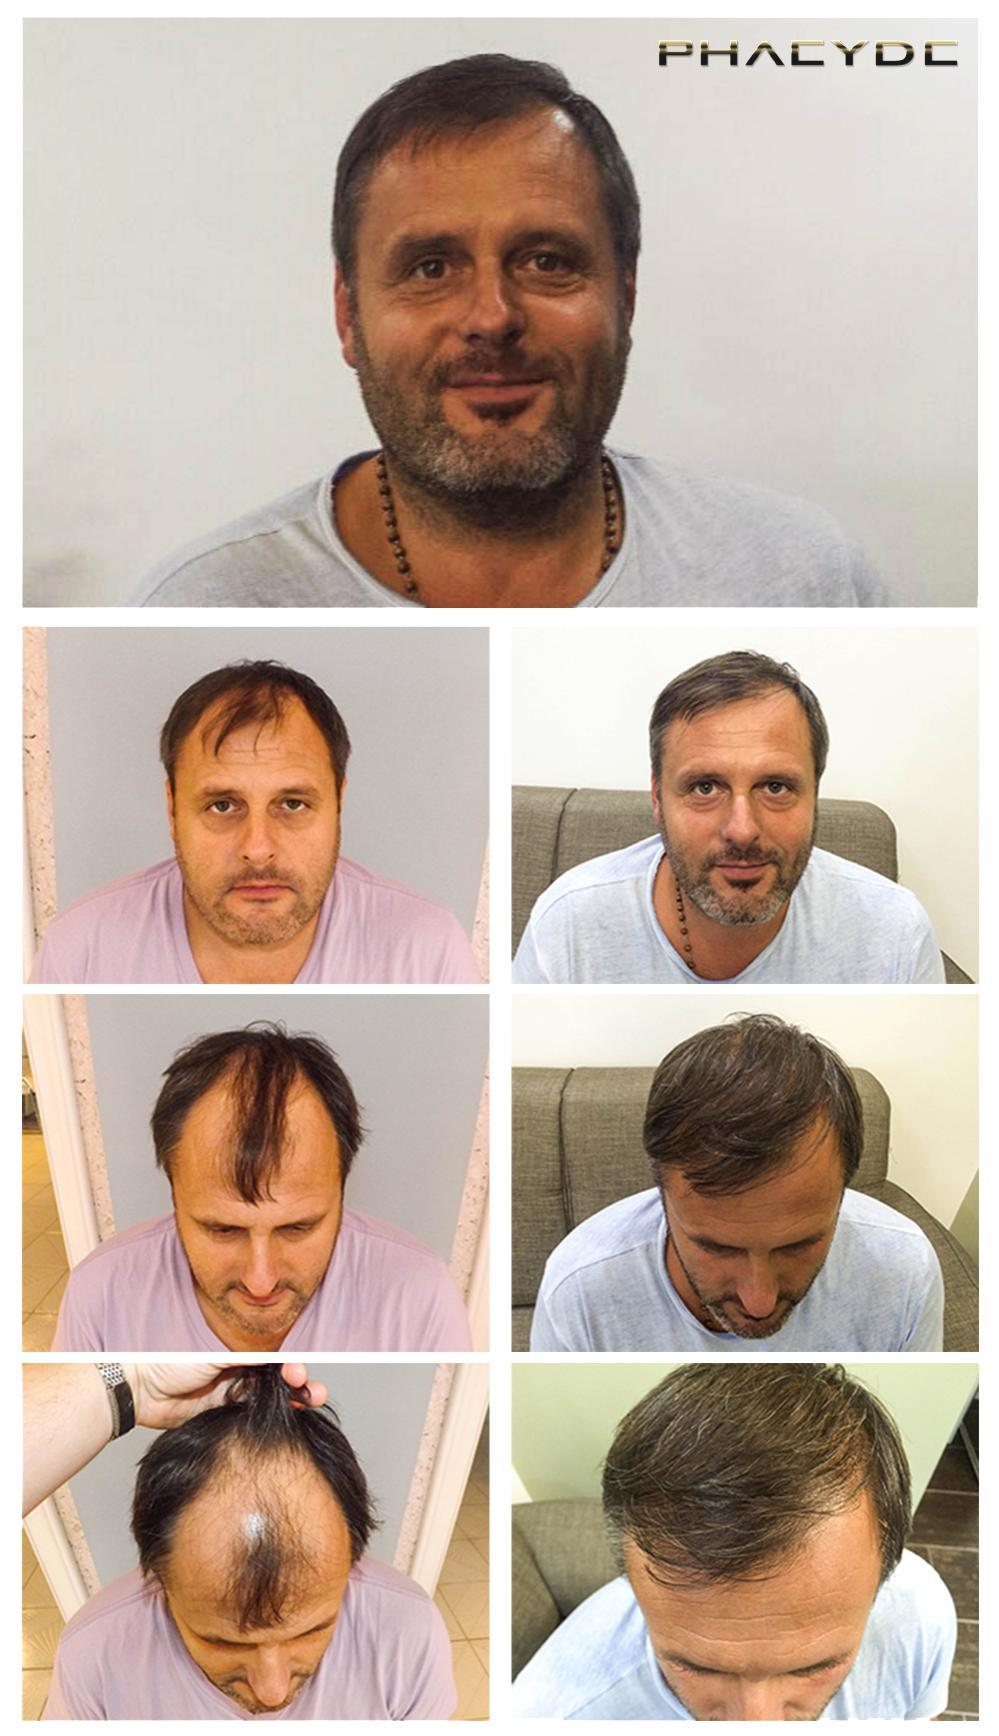 Hair transplant fue results before after photos michael k - PHAEYDE Clinic